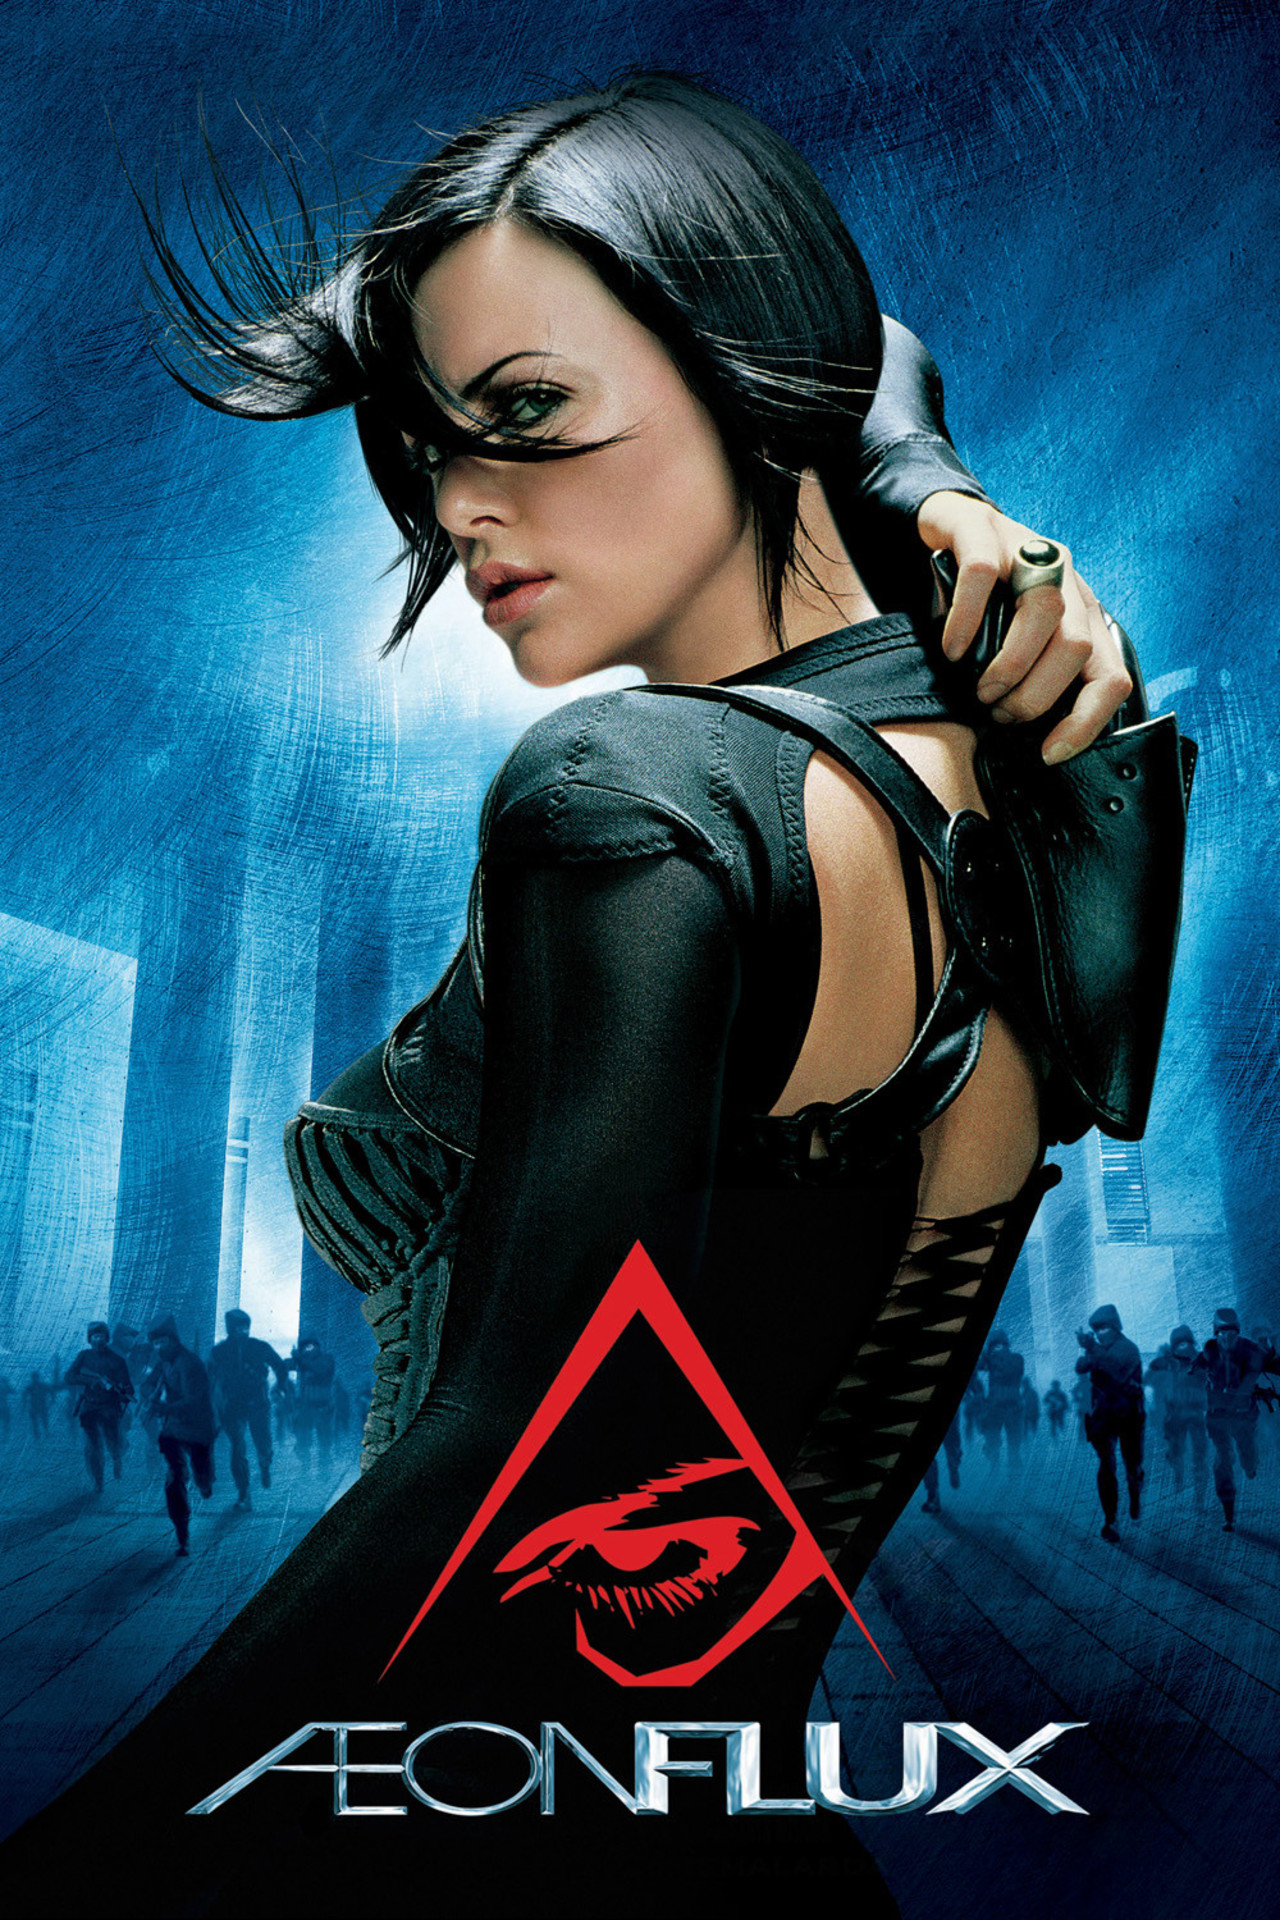 Poster for Aeon Flux